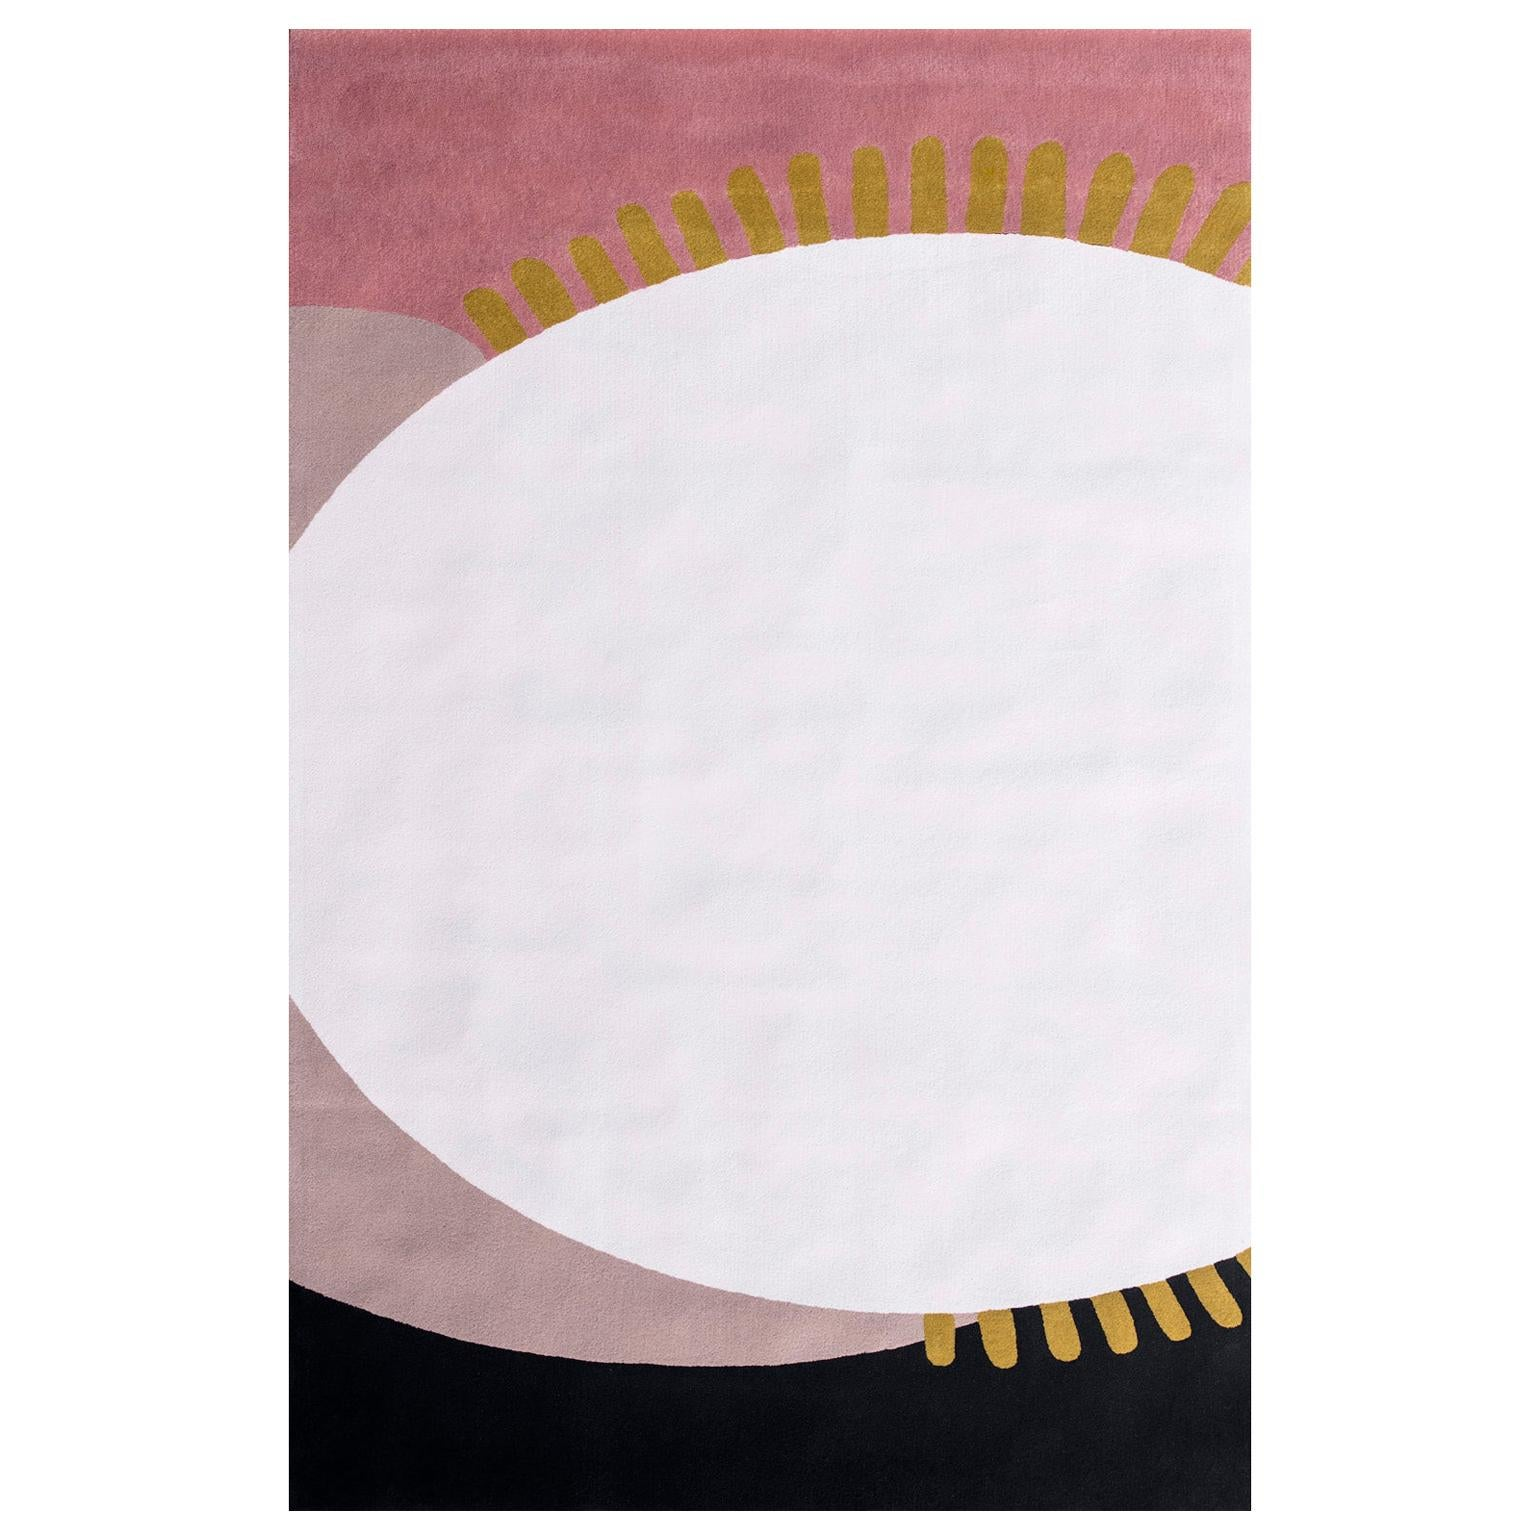 Kilombo Home 21st Century Hand Tufted Wool Rug Made in Spain White Gold Blue